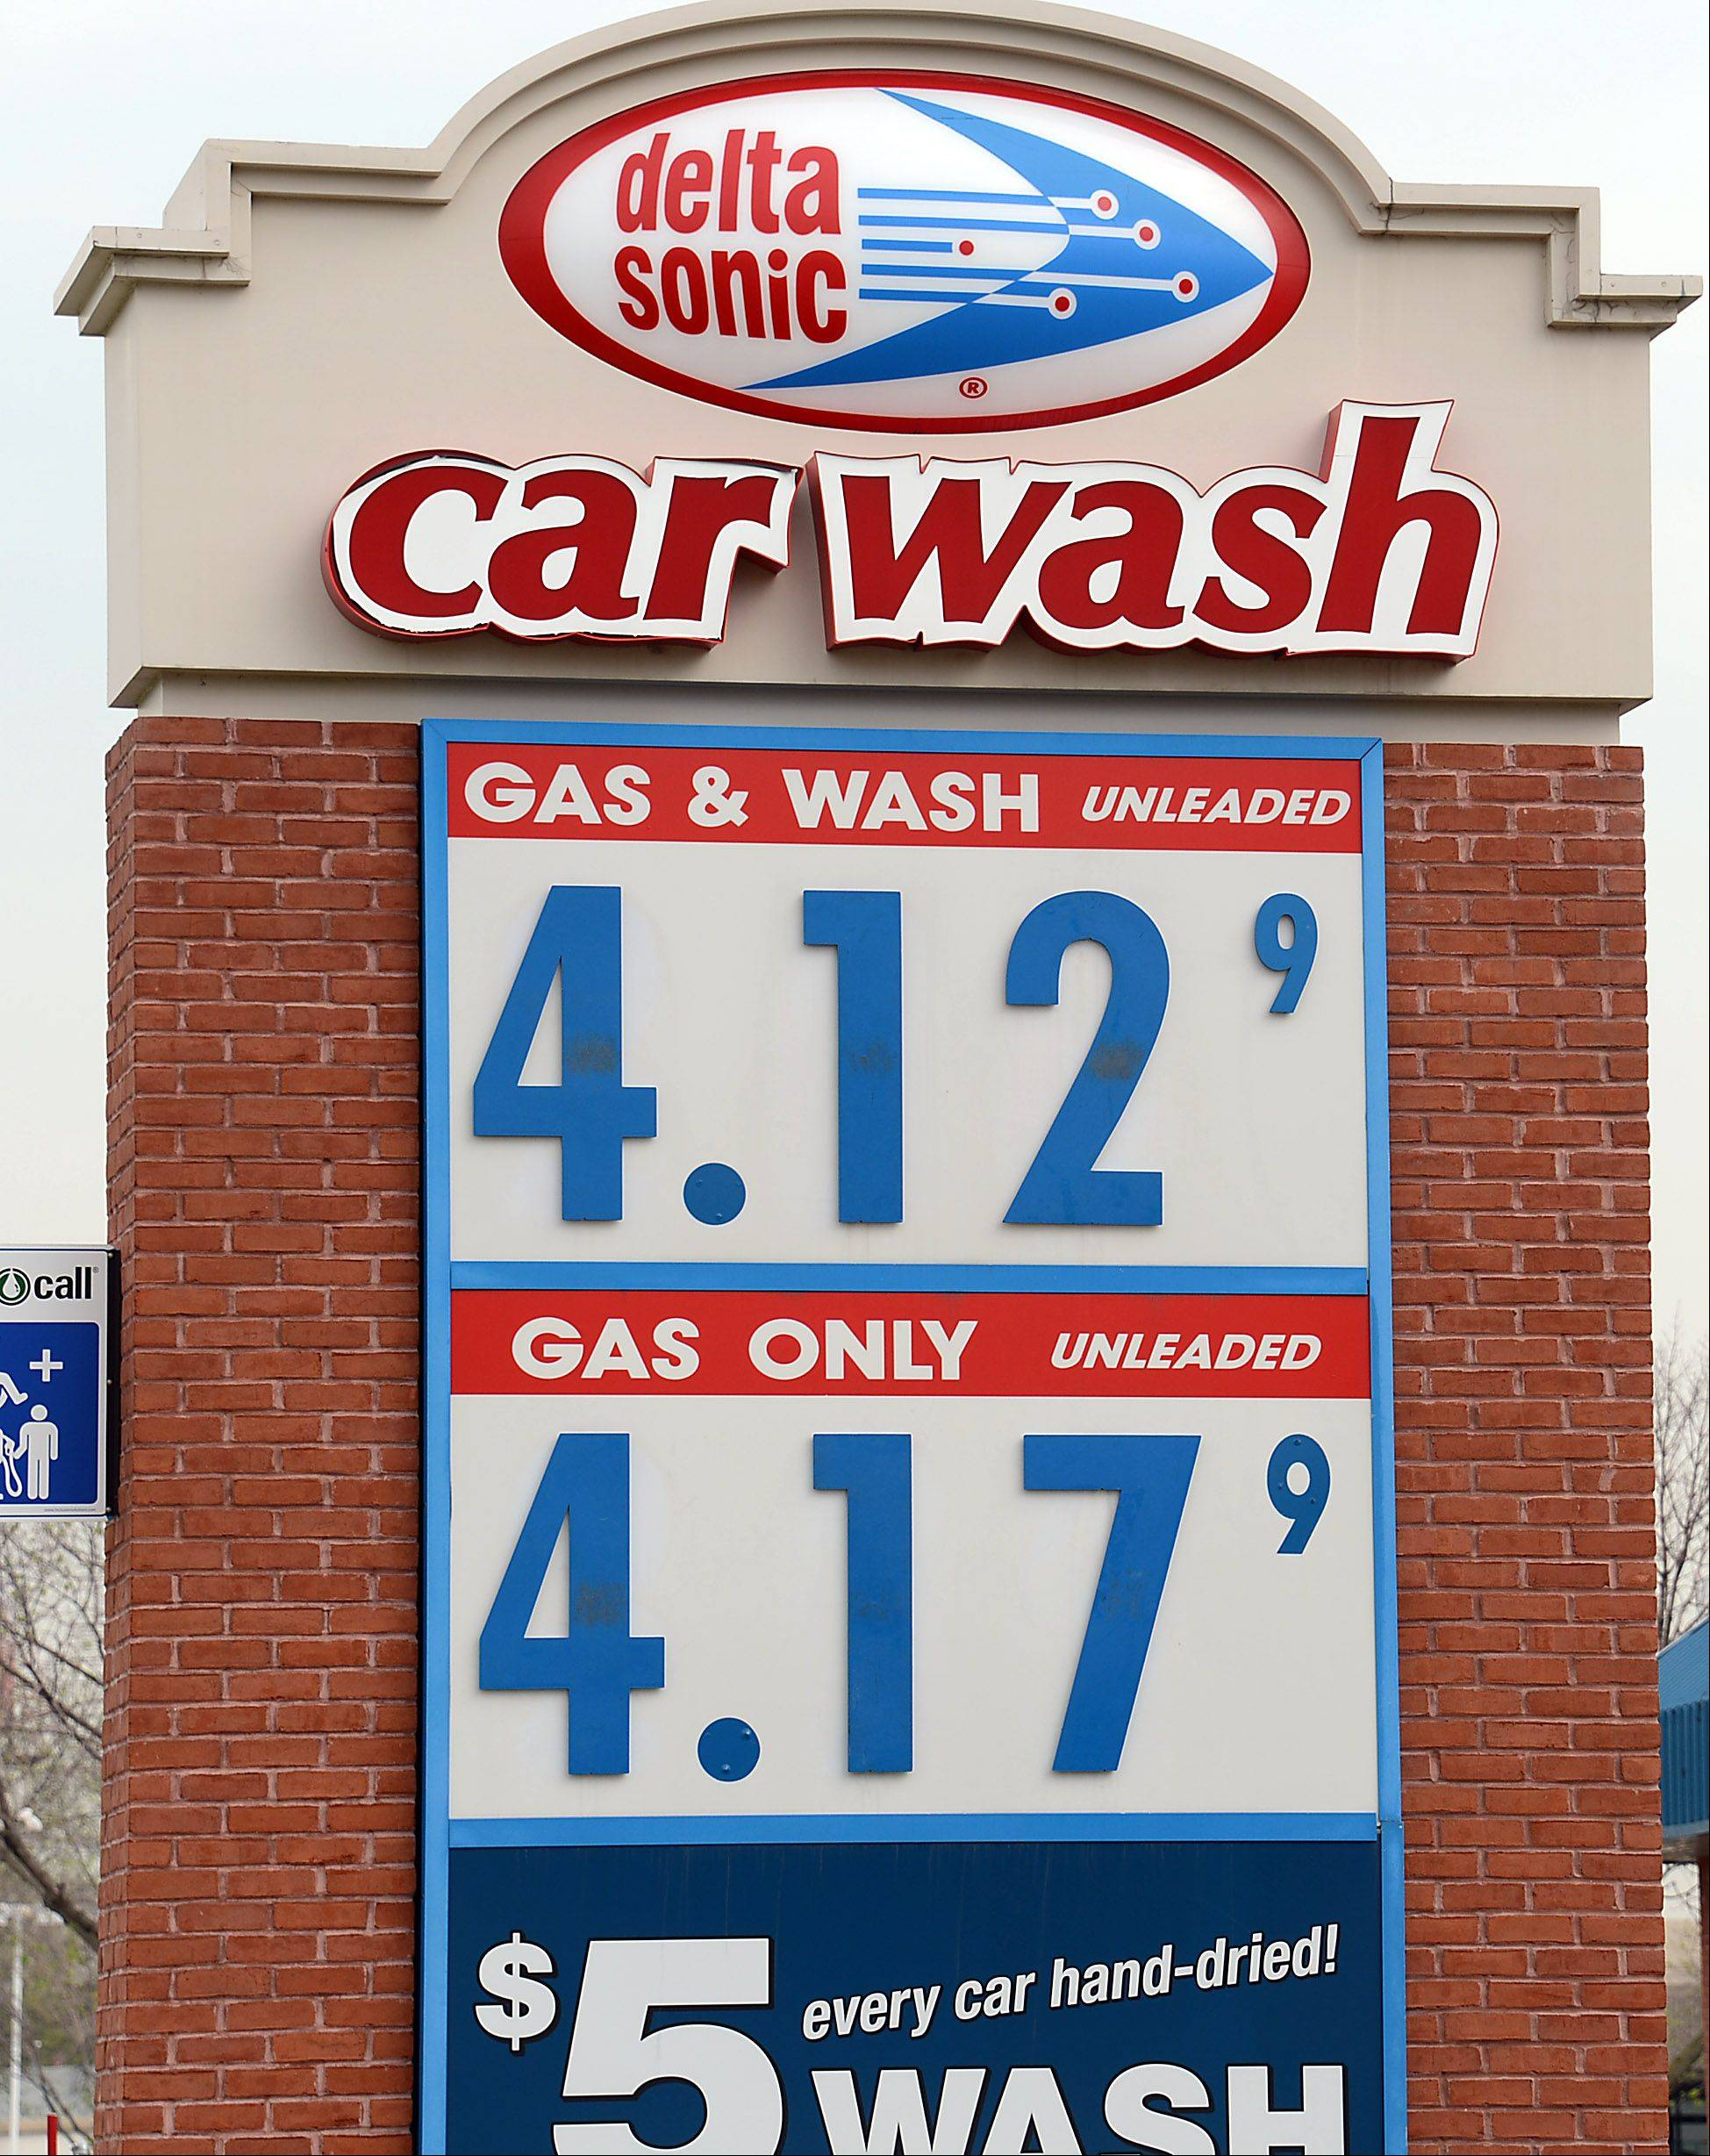 A gallon of regular unleaded was $4.17 without a wash at this Delta Sonic station in Palatine Thursday, far above national averages.